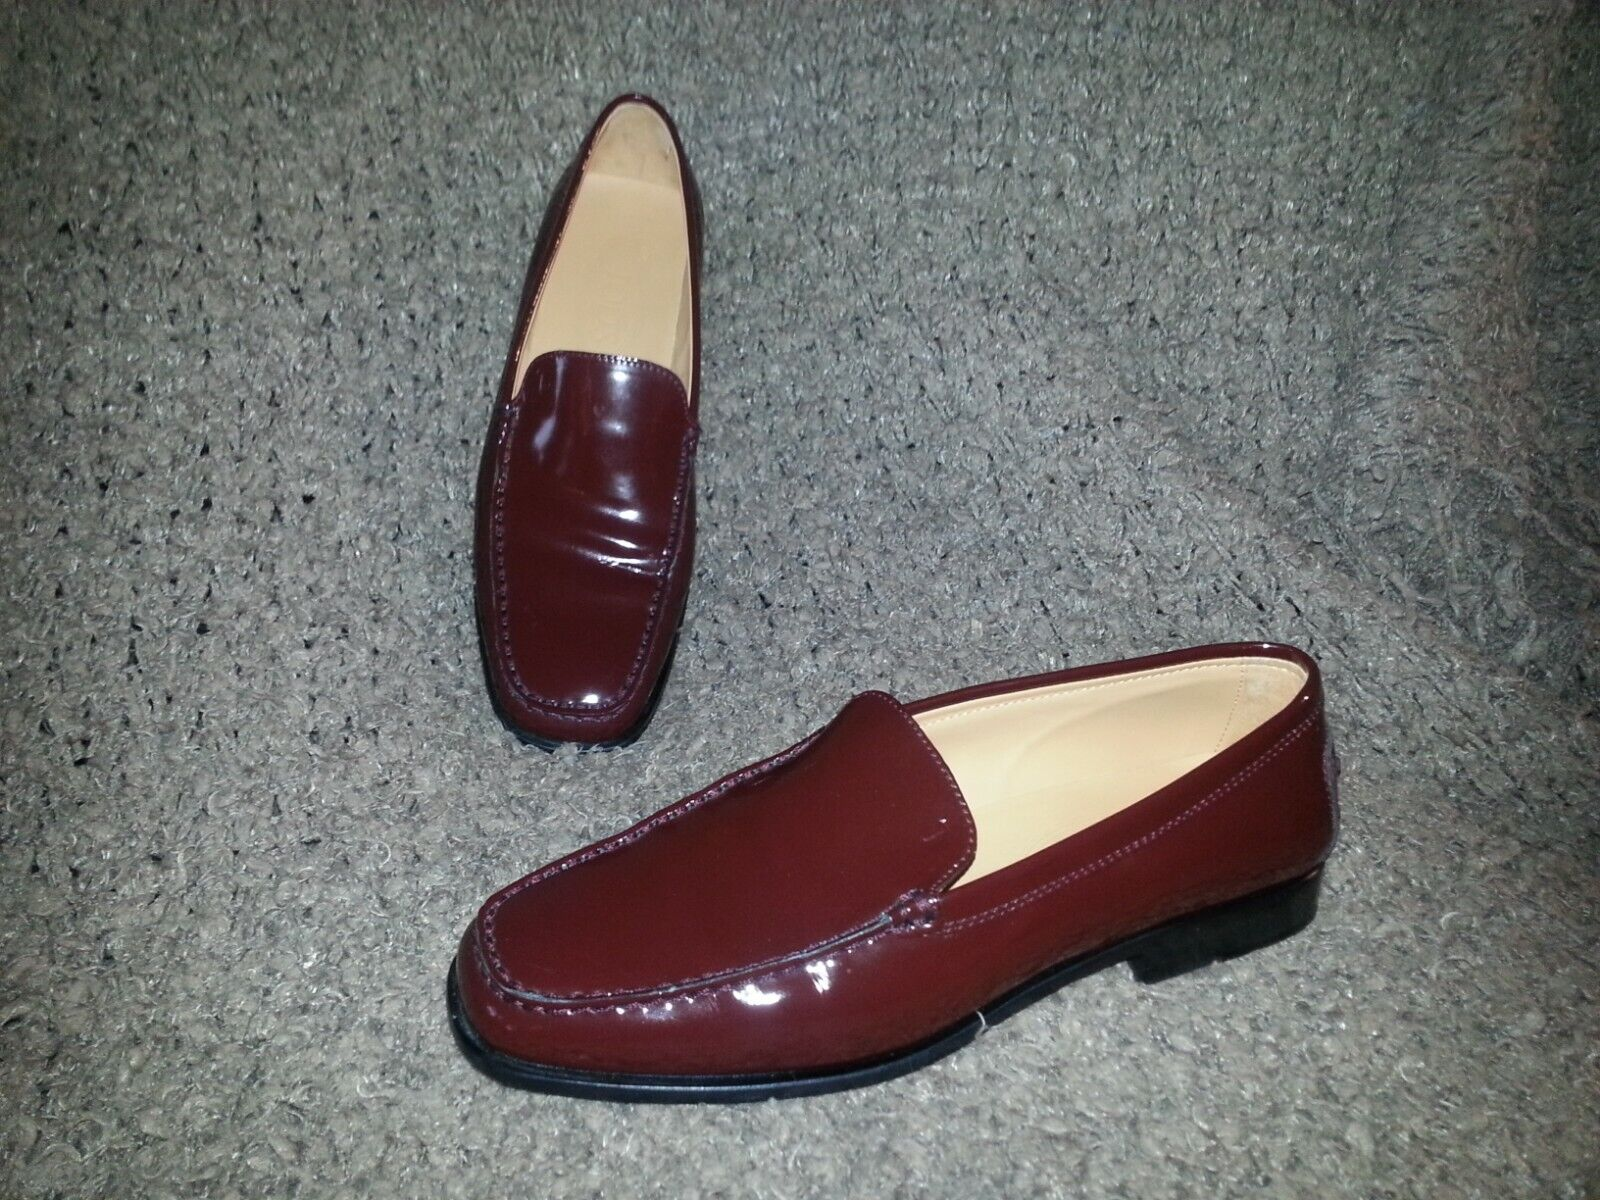 TOD's Loafers-Burgundy Patent Leather-Size 38.5-AUTHENTIC-EXCELLENT